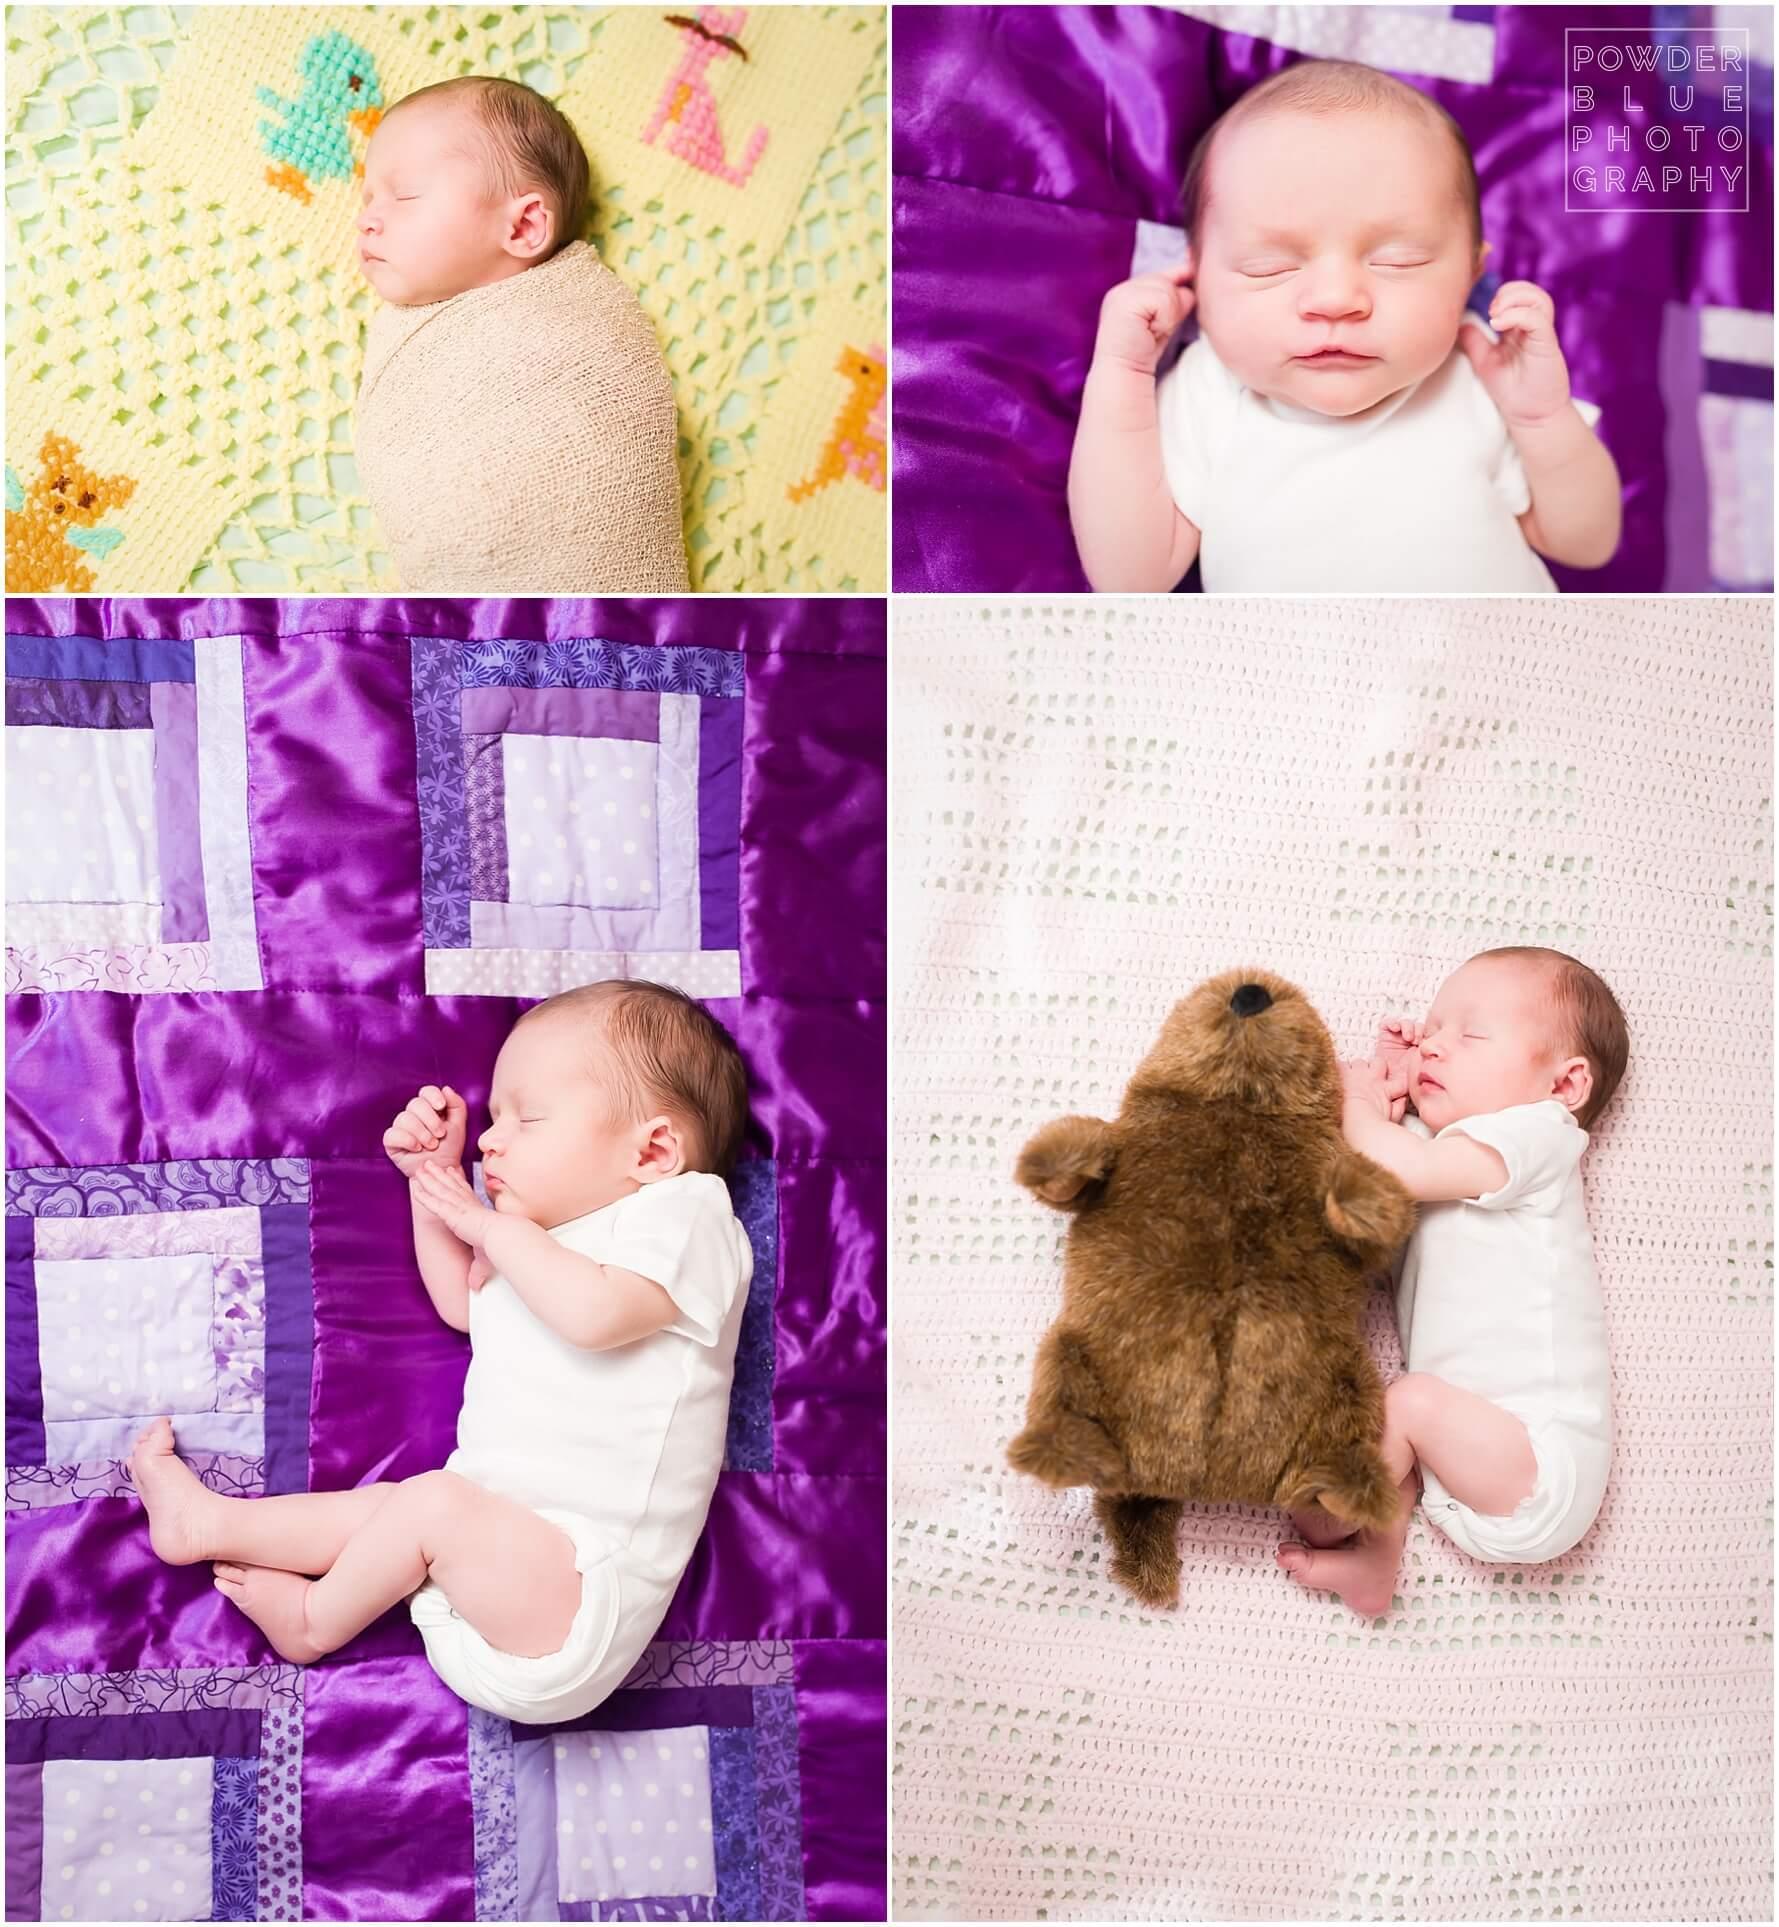 lifestyle newborn session in home colorful blankets pittsburgh